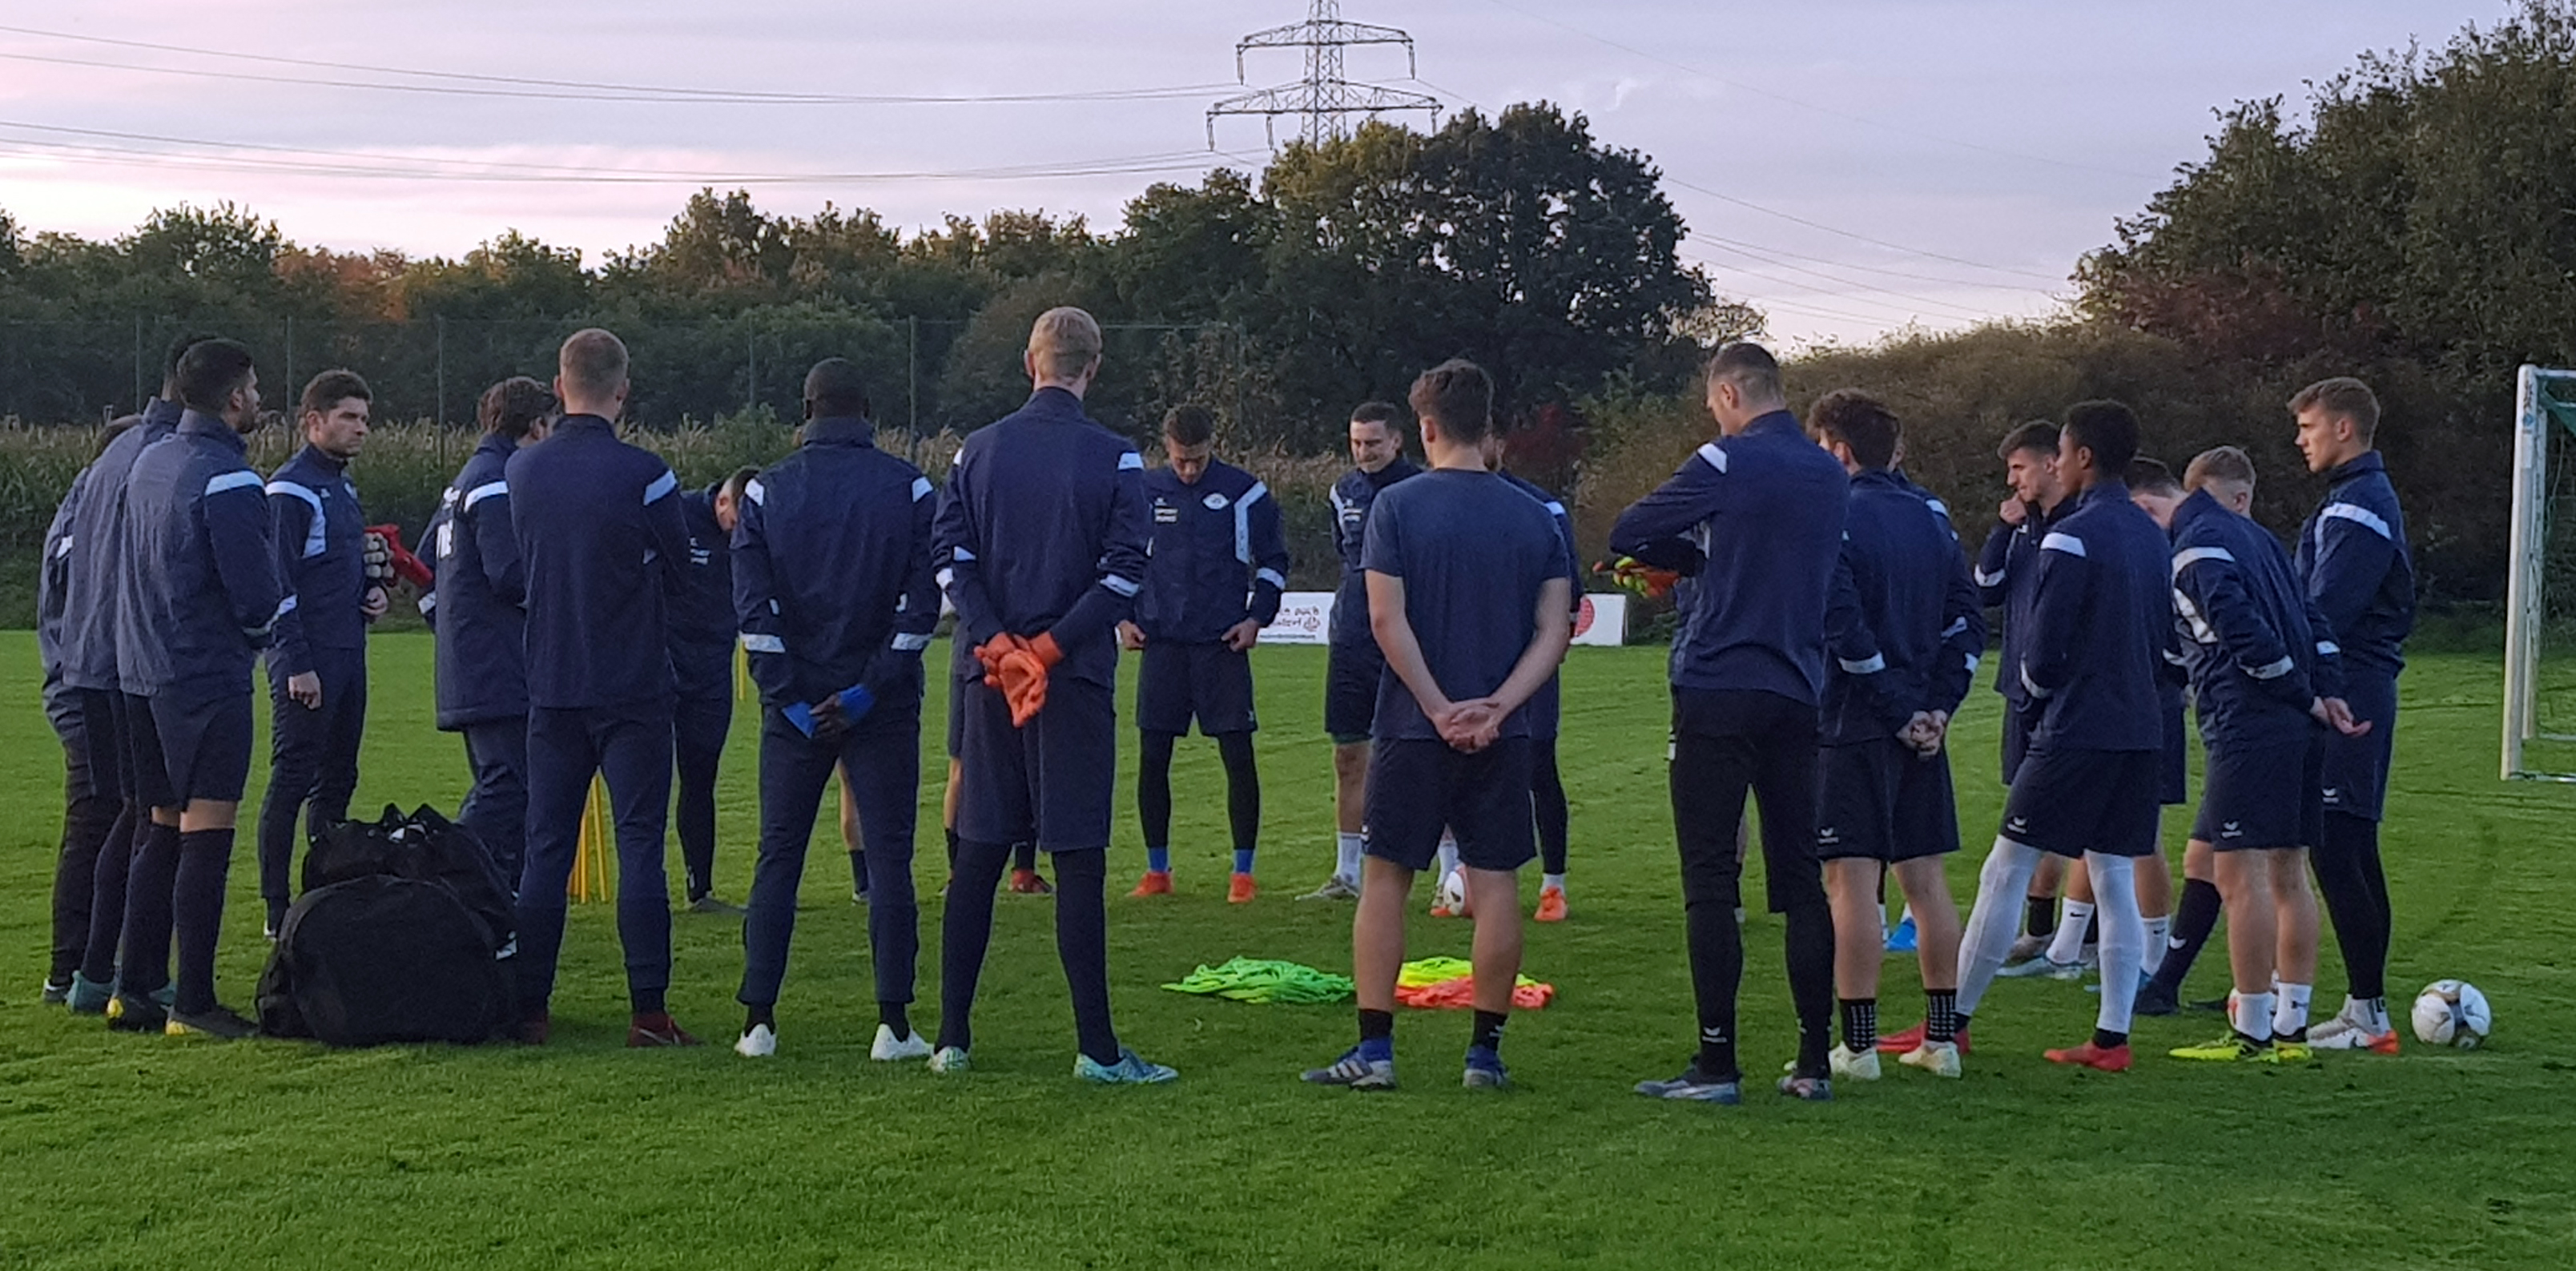 https://vfb-oldenburg.de/wp-content/uploads/Training-7.jpg